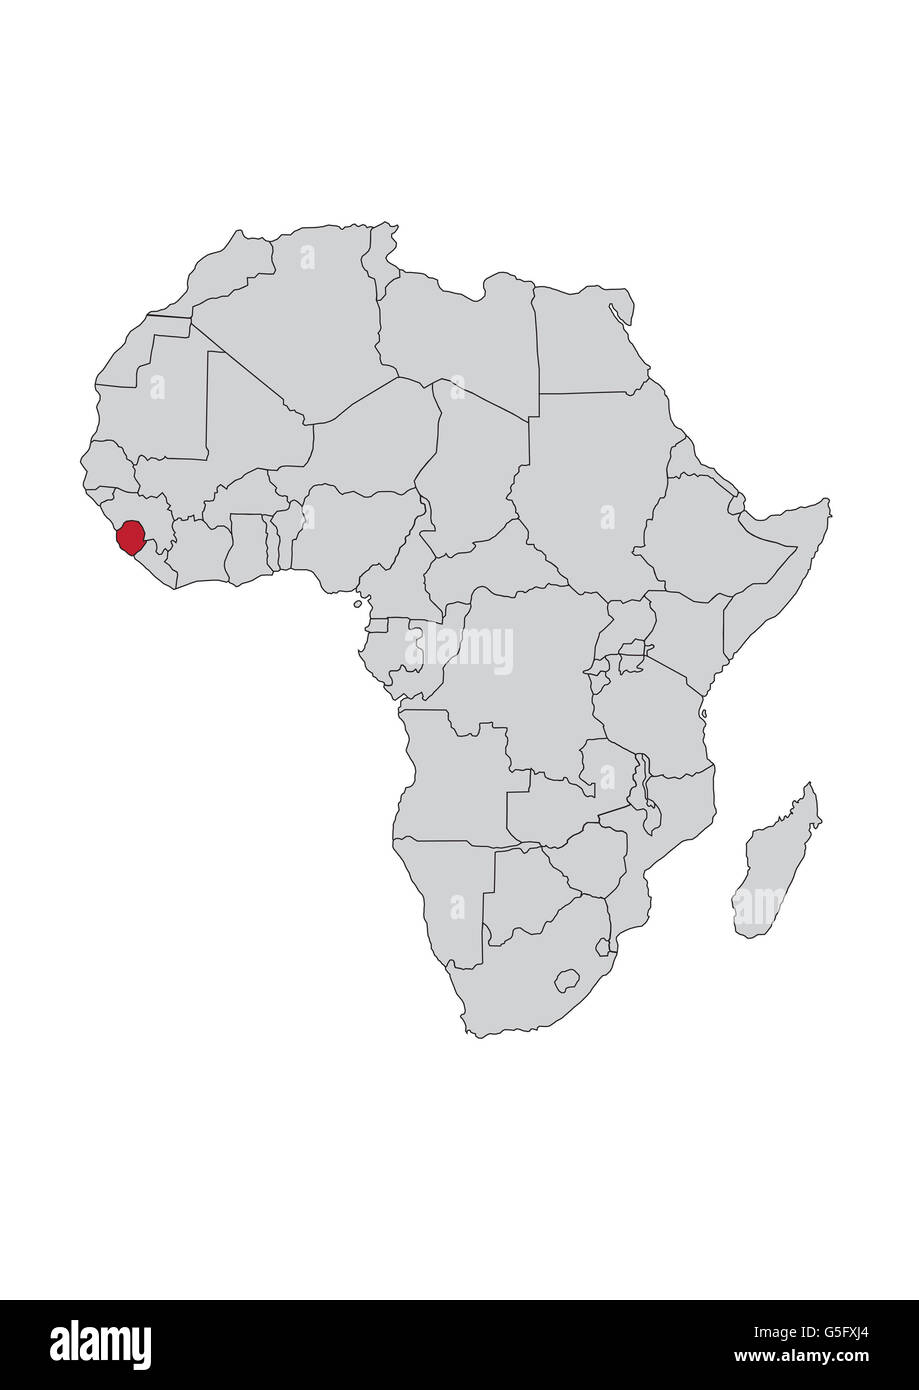 sierra leone africa map Map Africa Sierra Leone High Resolution Stock Photography And Images Alamy sierra leone africa map